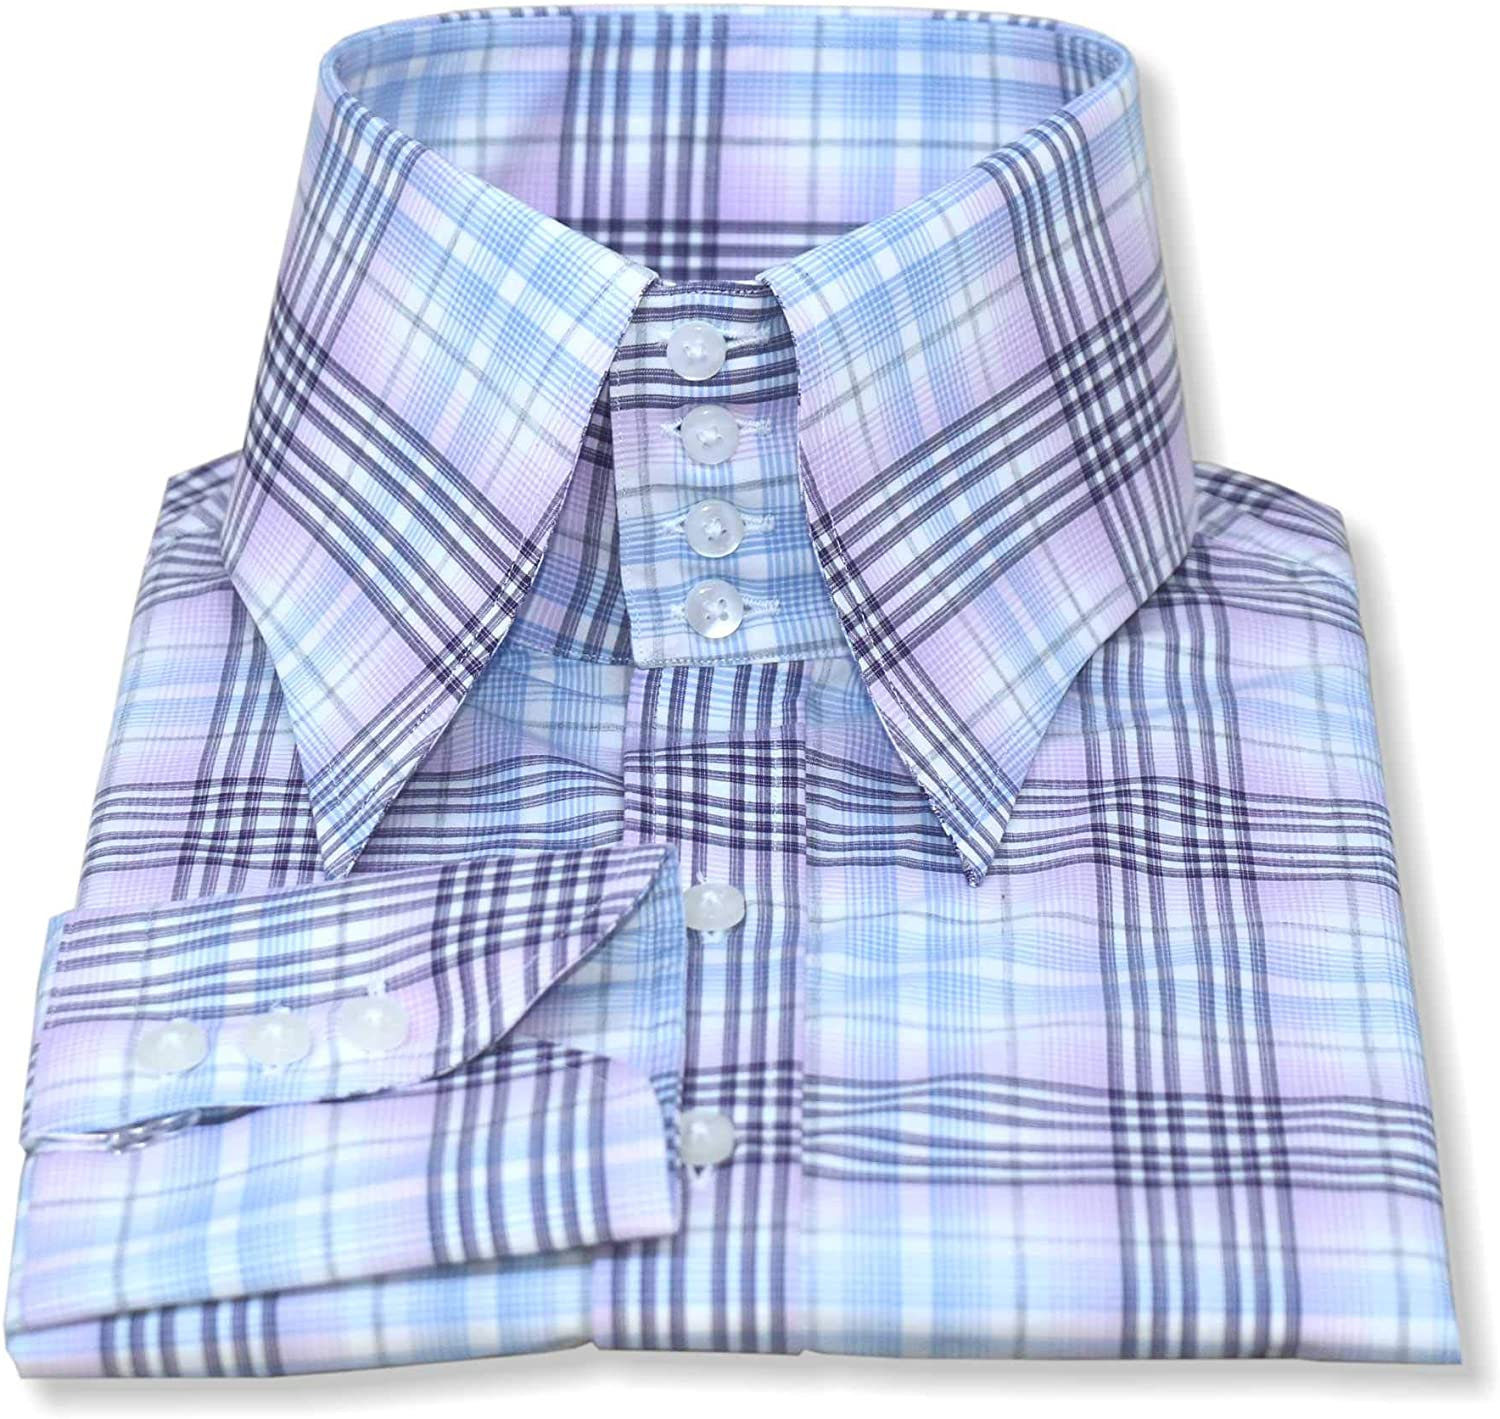 WhitePilotShirts Mens Long Point High Collar Casual Pink Checks 4 Buttons Spread Collar Cotton Shirt Gents